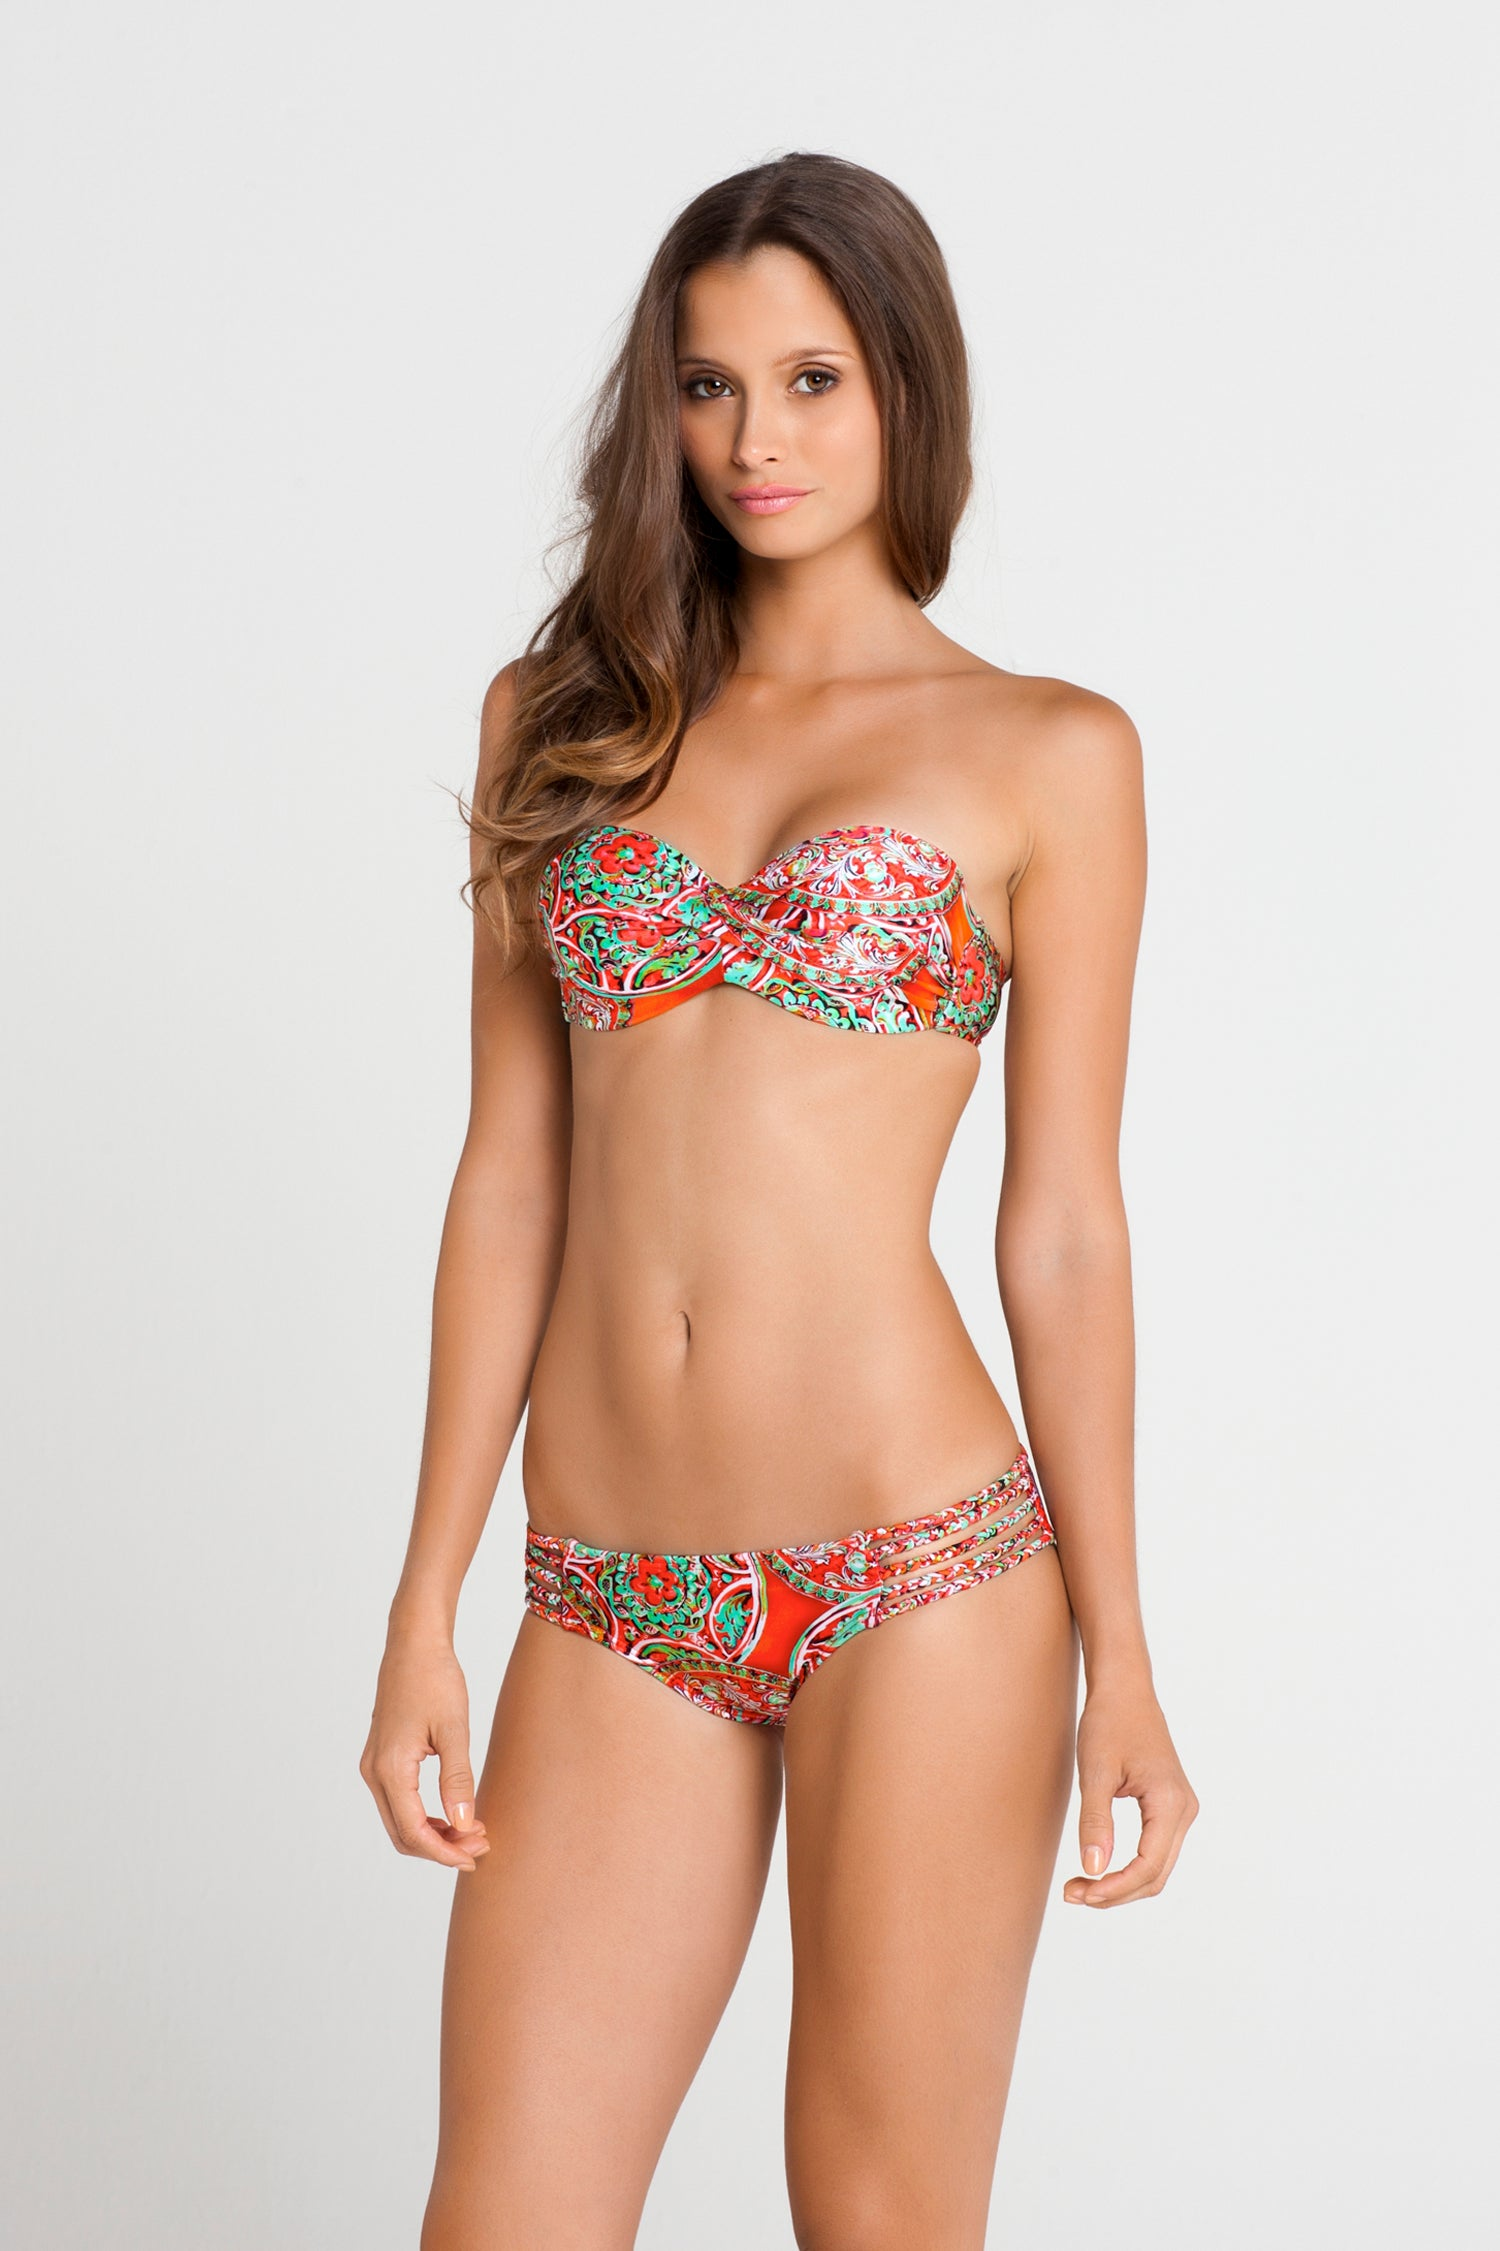 AZULEJOS DEL MAR - Underwire Push Up Bandeau Top & Braided Side Full Bottom • Multicolor